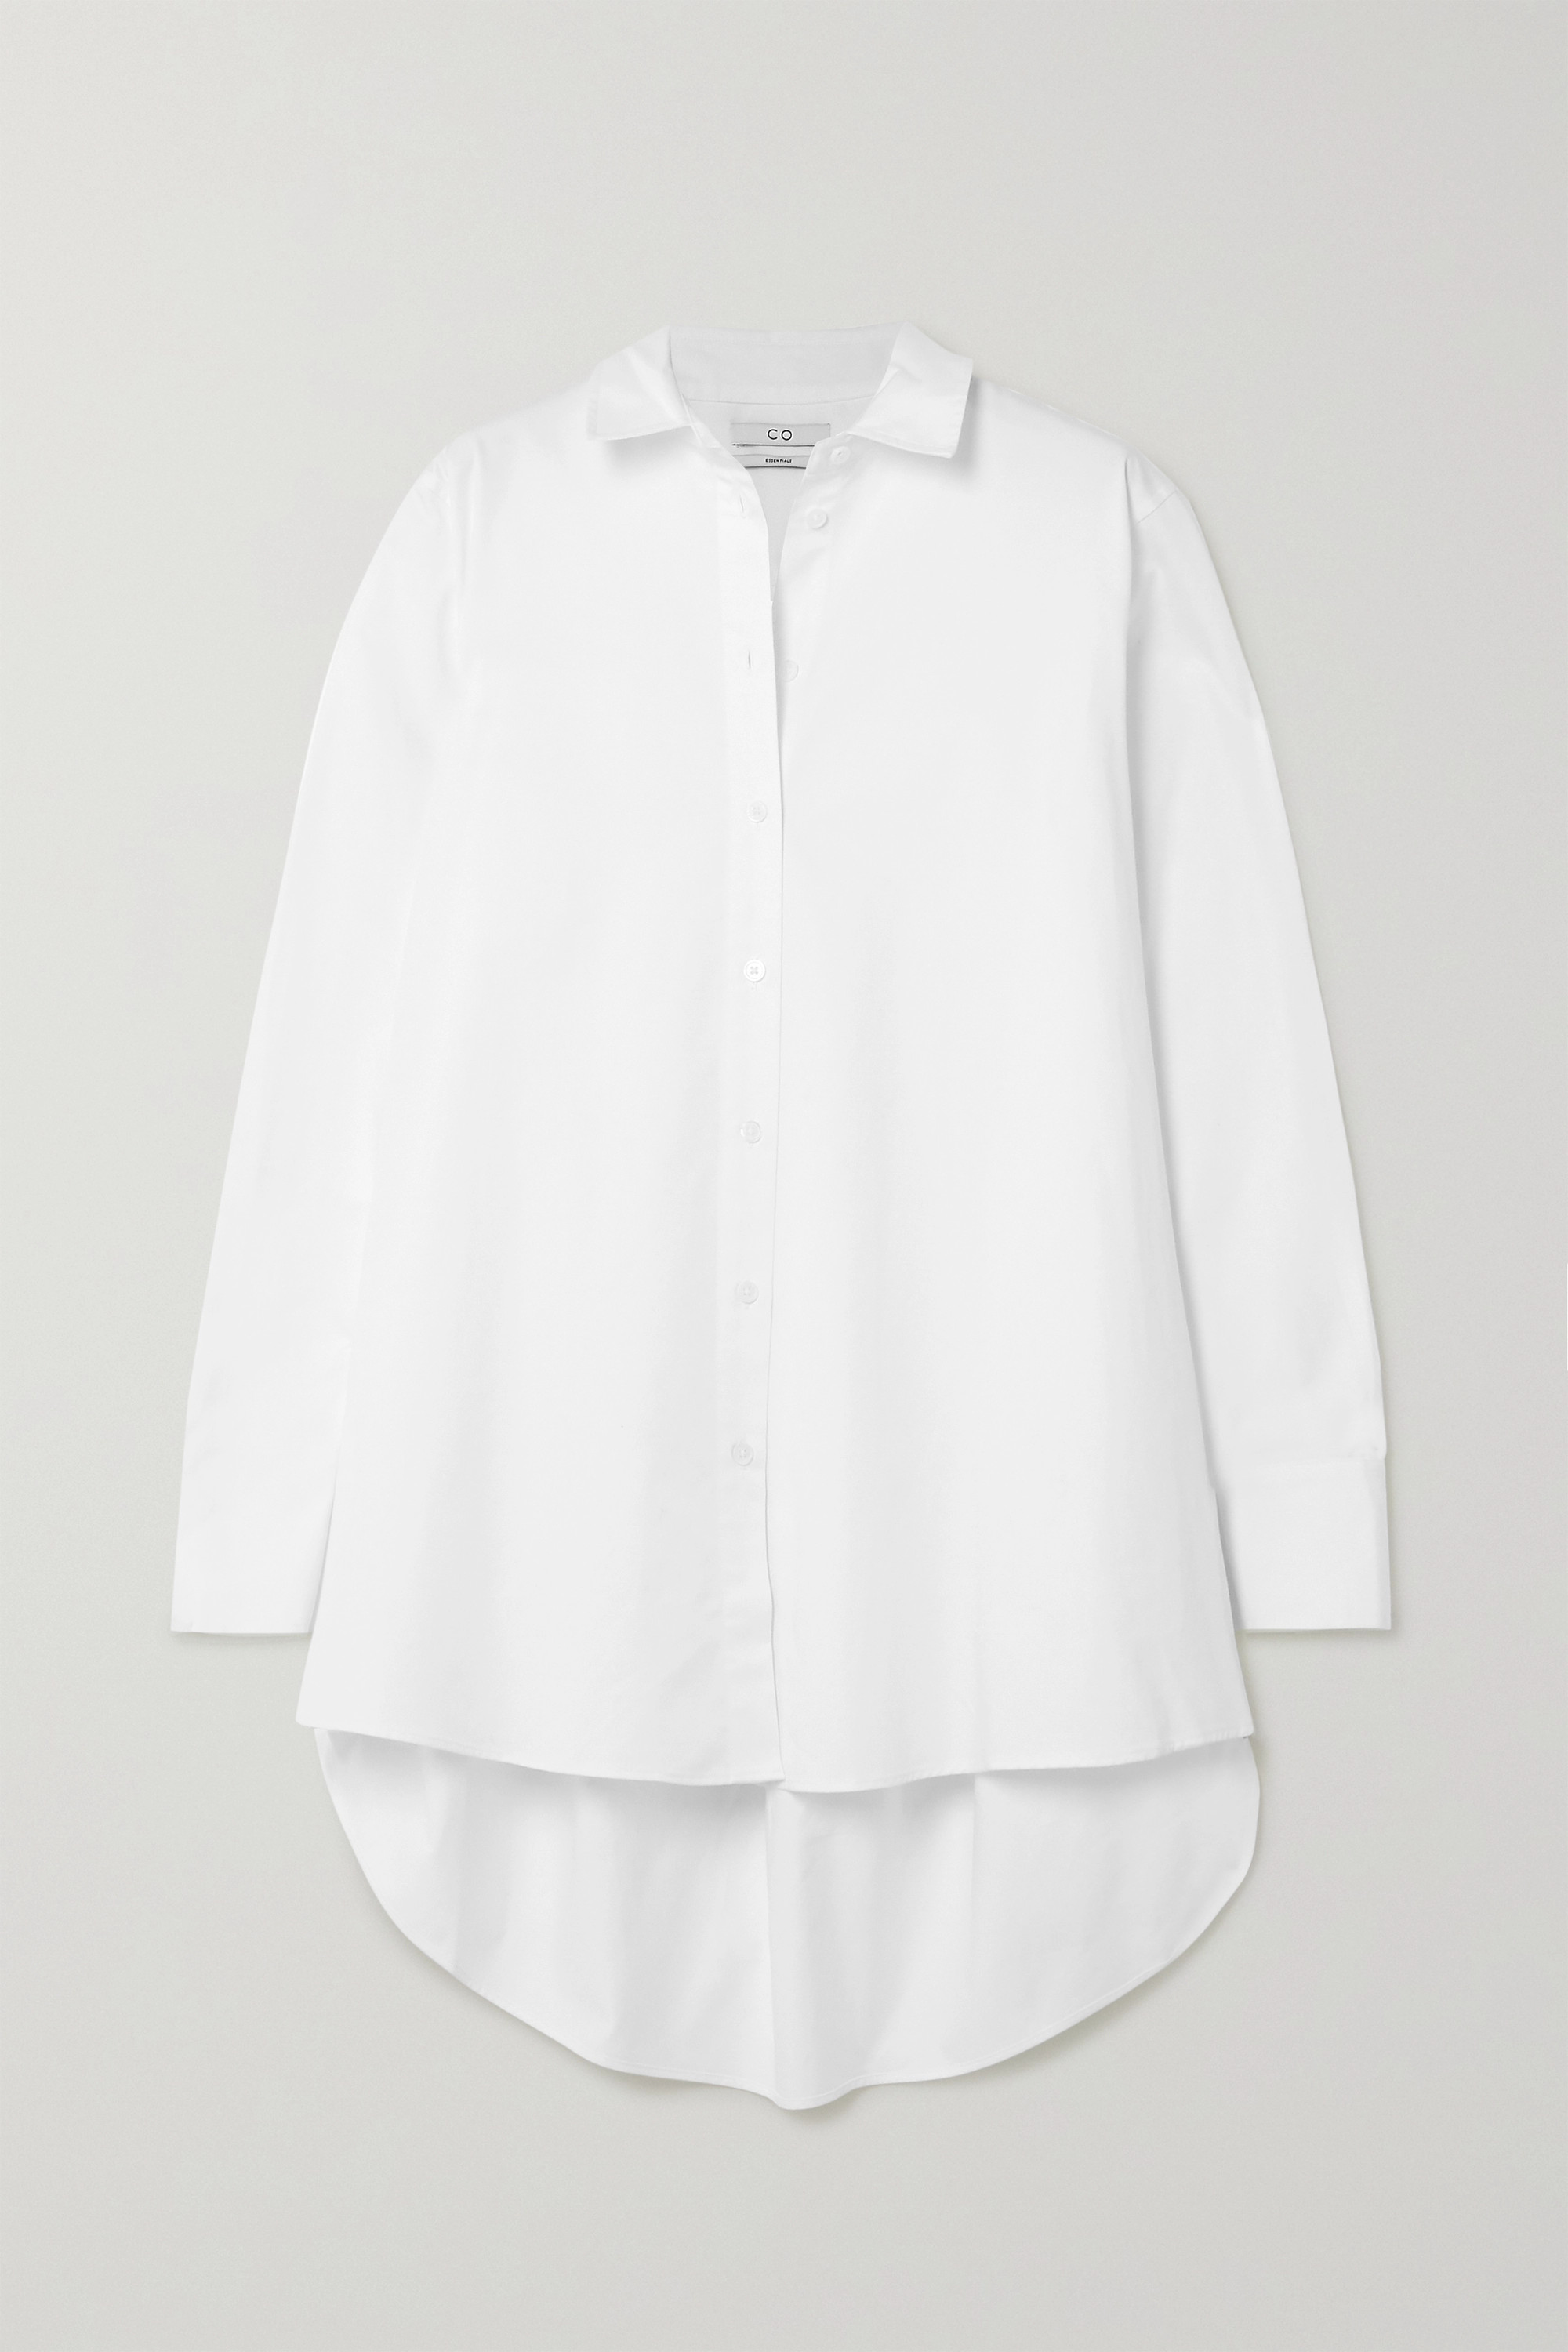 Co Cotton-poplin shirt